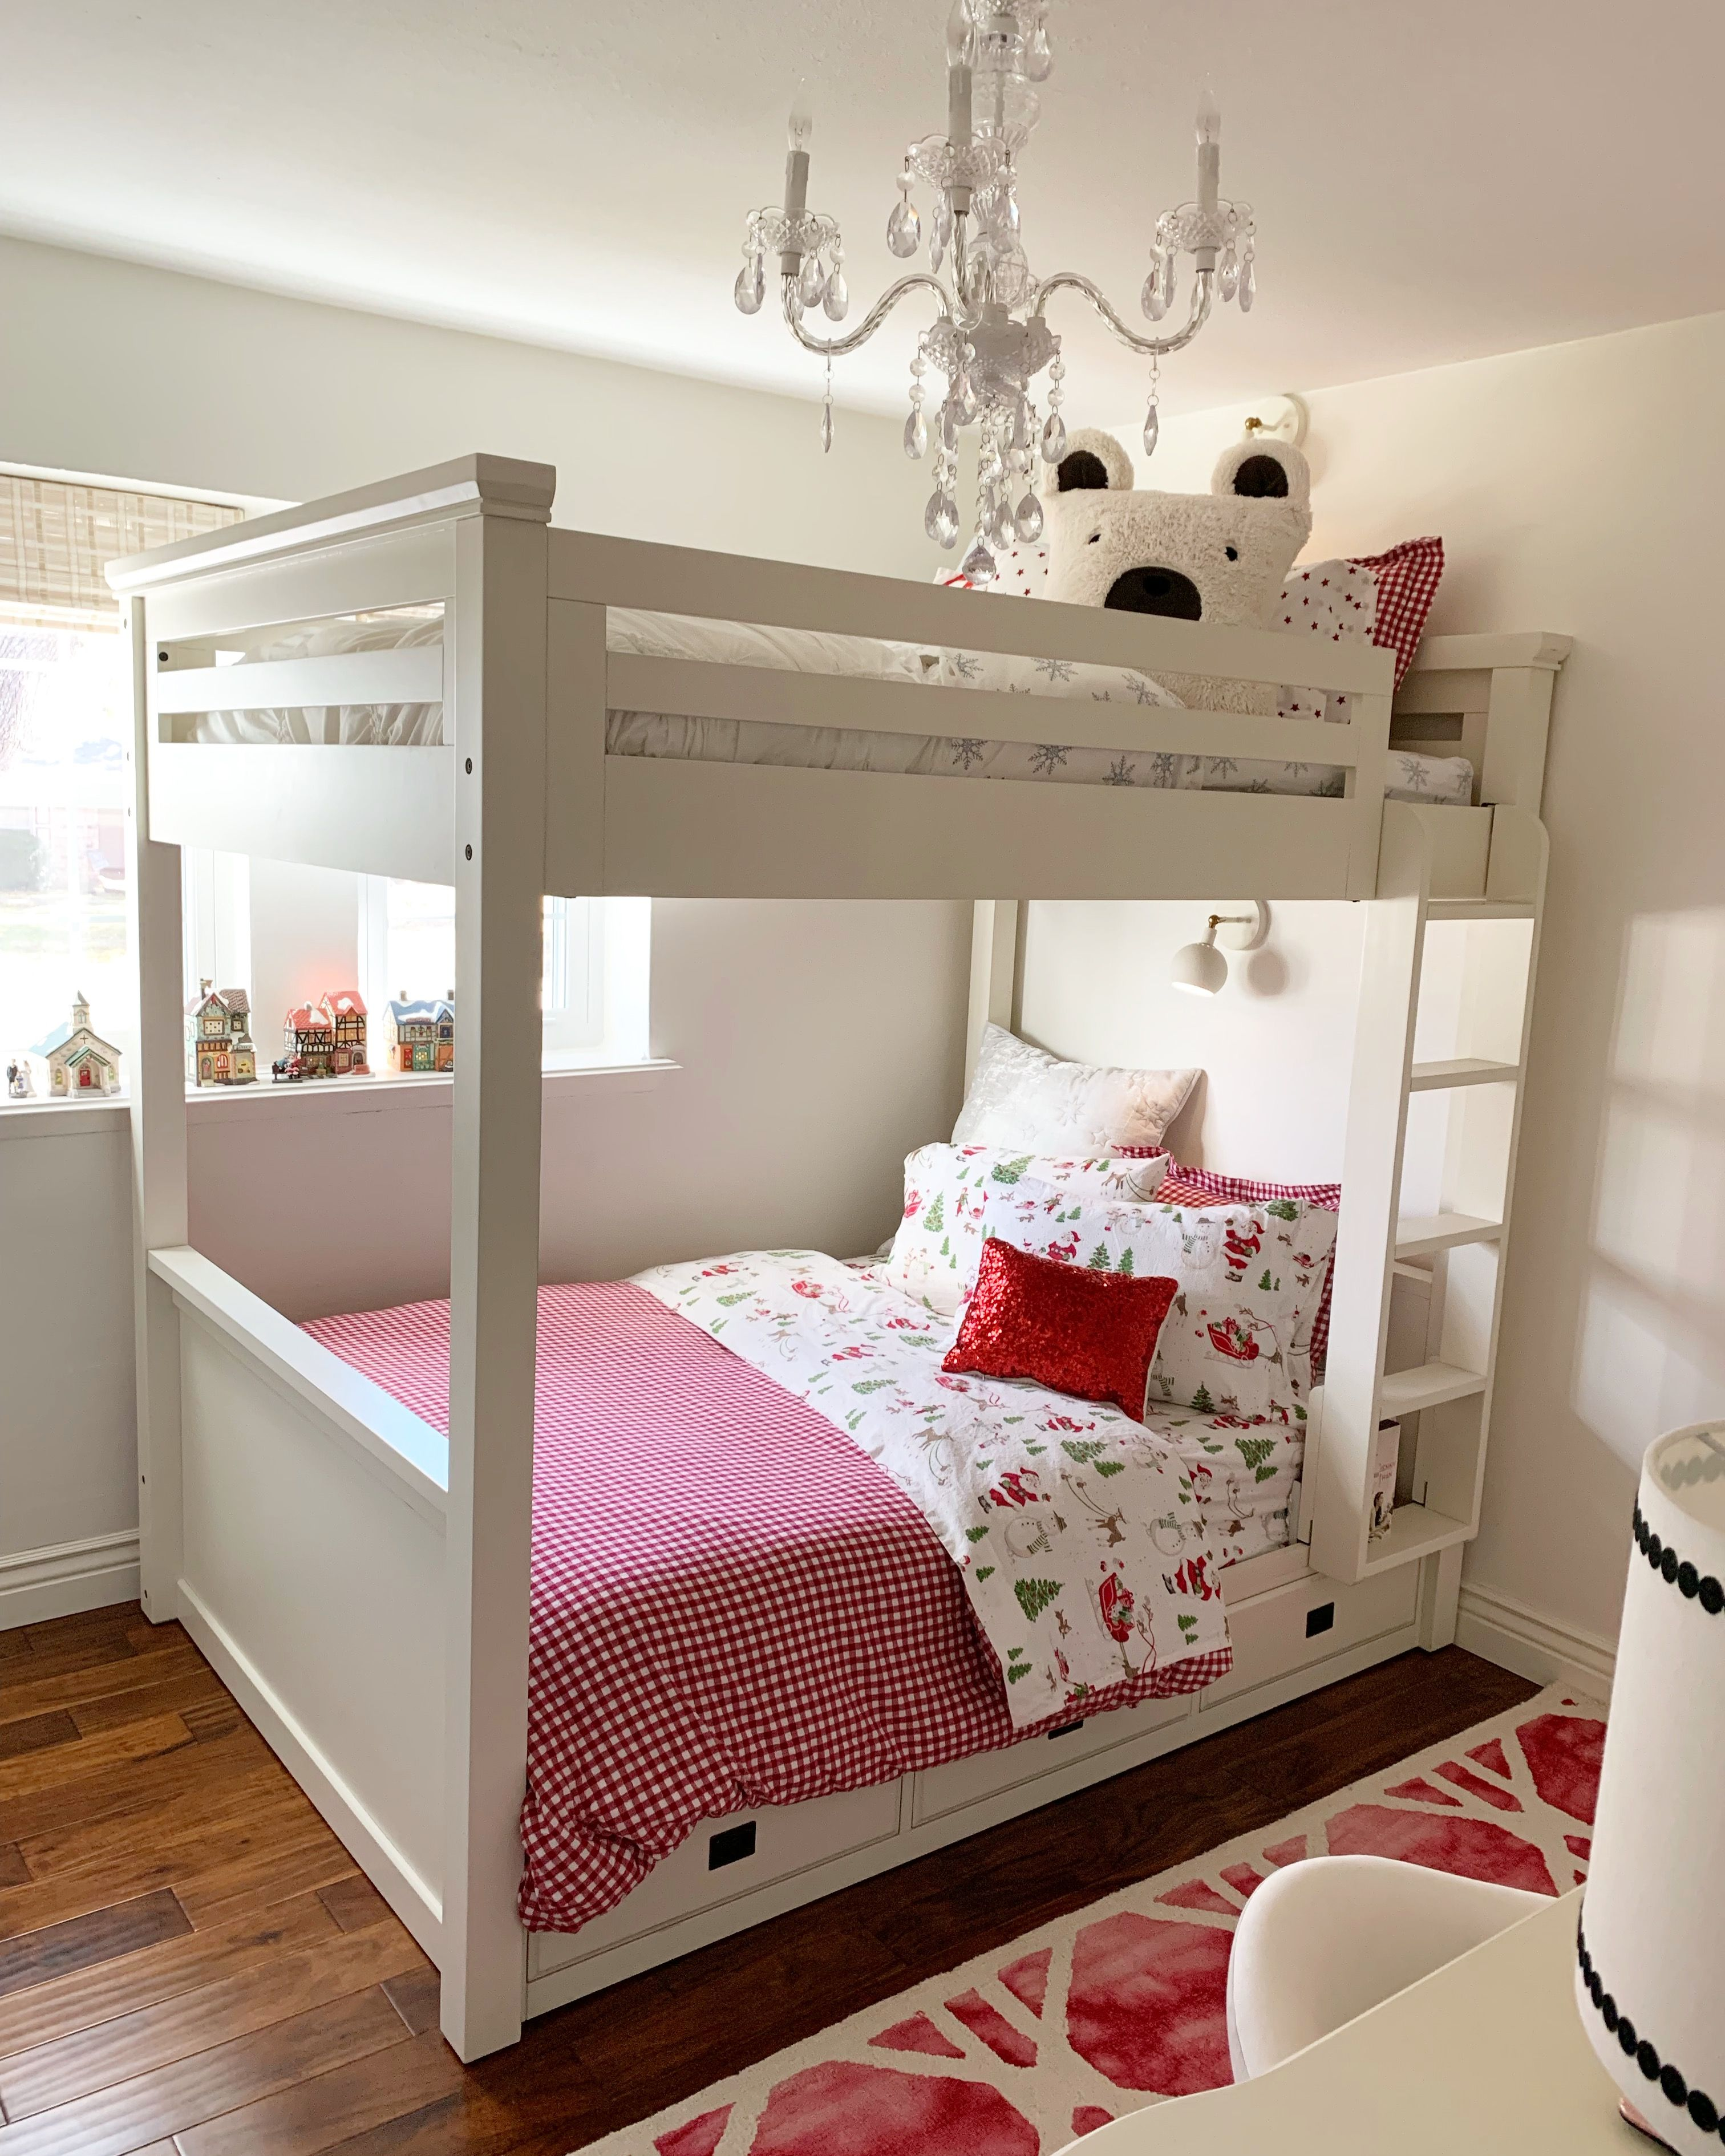 29++ Girls bedroom ideas with bunk beds ideas in 2021